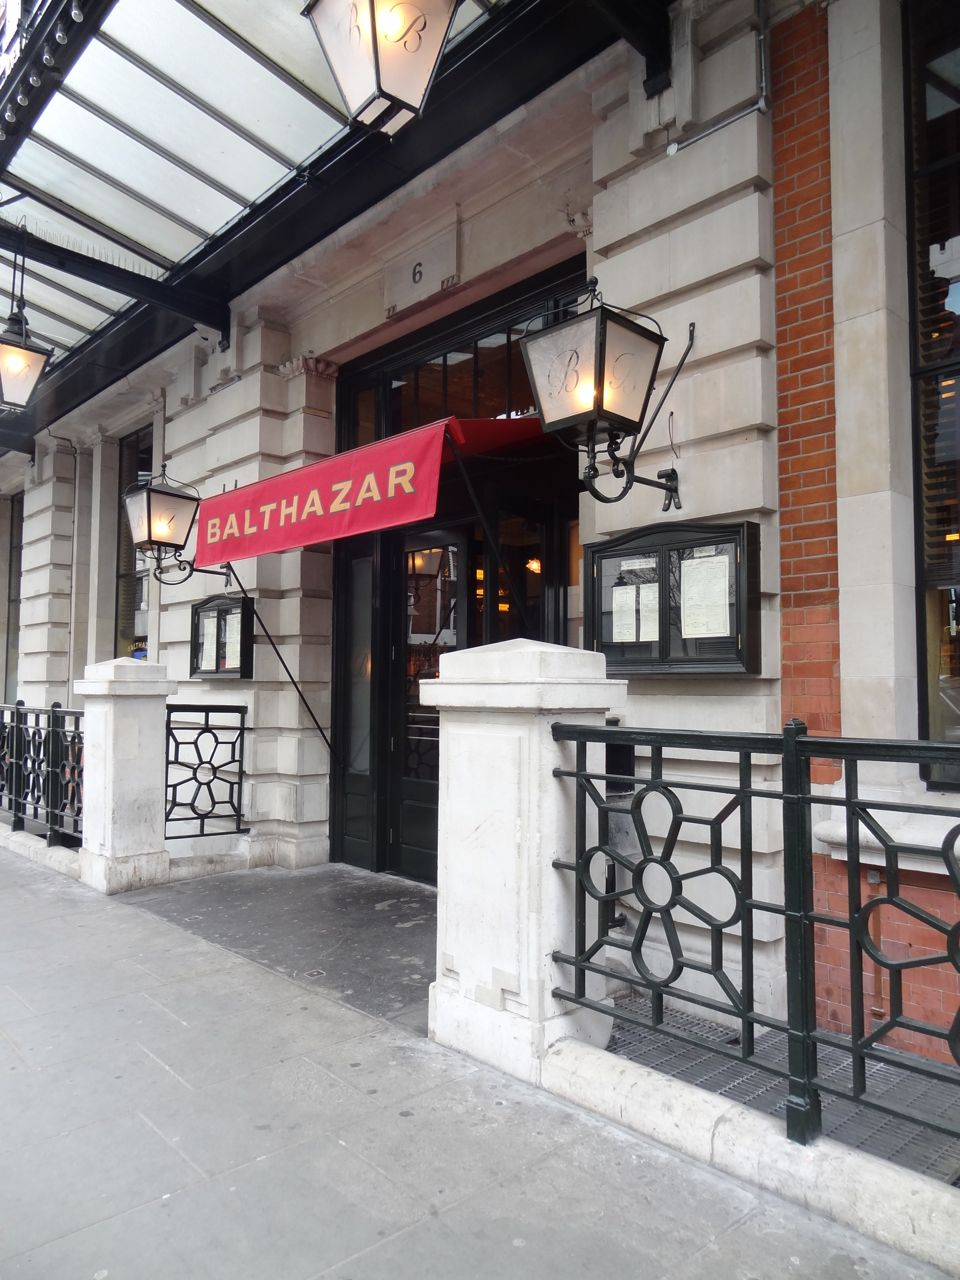 Unique Scrumpdillyicious Balthazar The New York Brasserie Debuts In London With Gorgeous On The Corner Of Russell Street And Wellington Street In The Heart Of Covent  Garden Balthazar Made Its London Debut About  Weeks Ago With Awesome Sycamore Garden Centre Also Cast Metal Garden Furniture In Addition Wyken Hall Gardens And Simple Low Maintenance Garden Designs As Well As Garden Design In Bristol Additionally Jongleurs Comedy Club Covent Garden From Scrumpdillyiciousblogspotcom With   Gorgeous Scrumpdillyicious Balthazar The New York Brasserie Debuts In London With Awesome On The Corner Of Russell Street And Wellington Street In The Heart Of Covent  Garden Balthazar Made Its London Debut About  Weeks Ago And Unique Sycamore Garden Centre Also Cast Metal Garden Furniture In Addition Wyken Hall Gardens From Scrumpdillyiciousblogspotcom